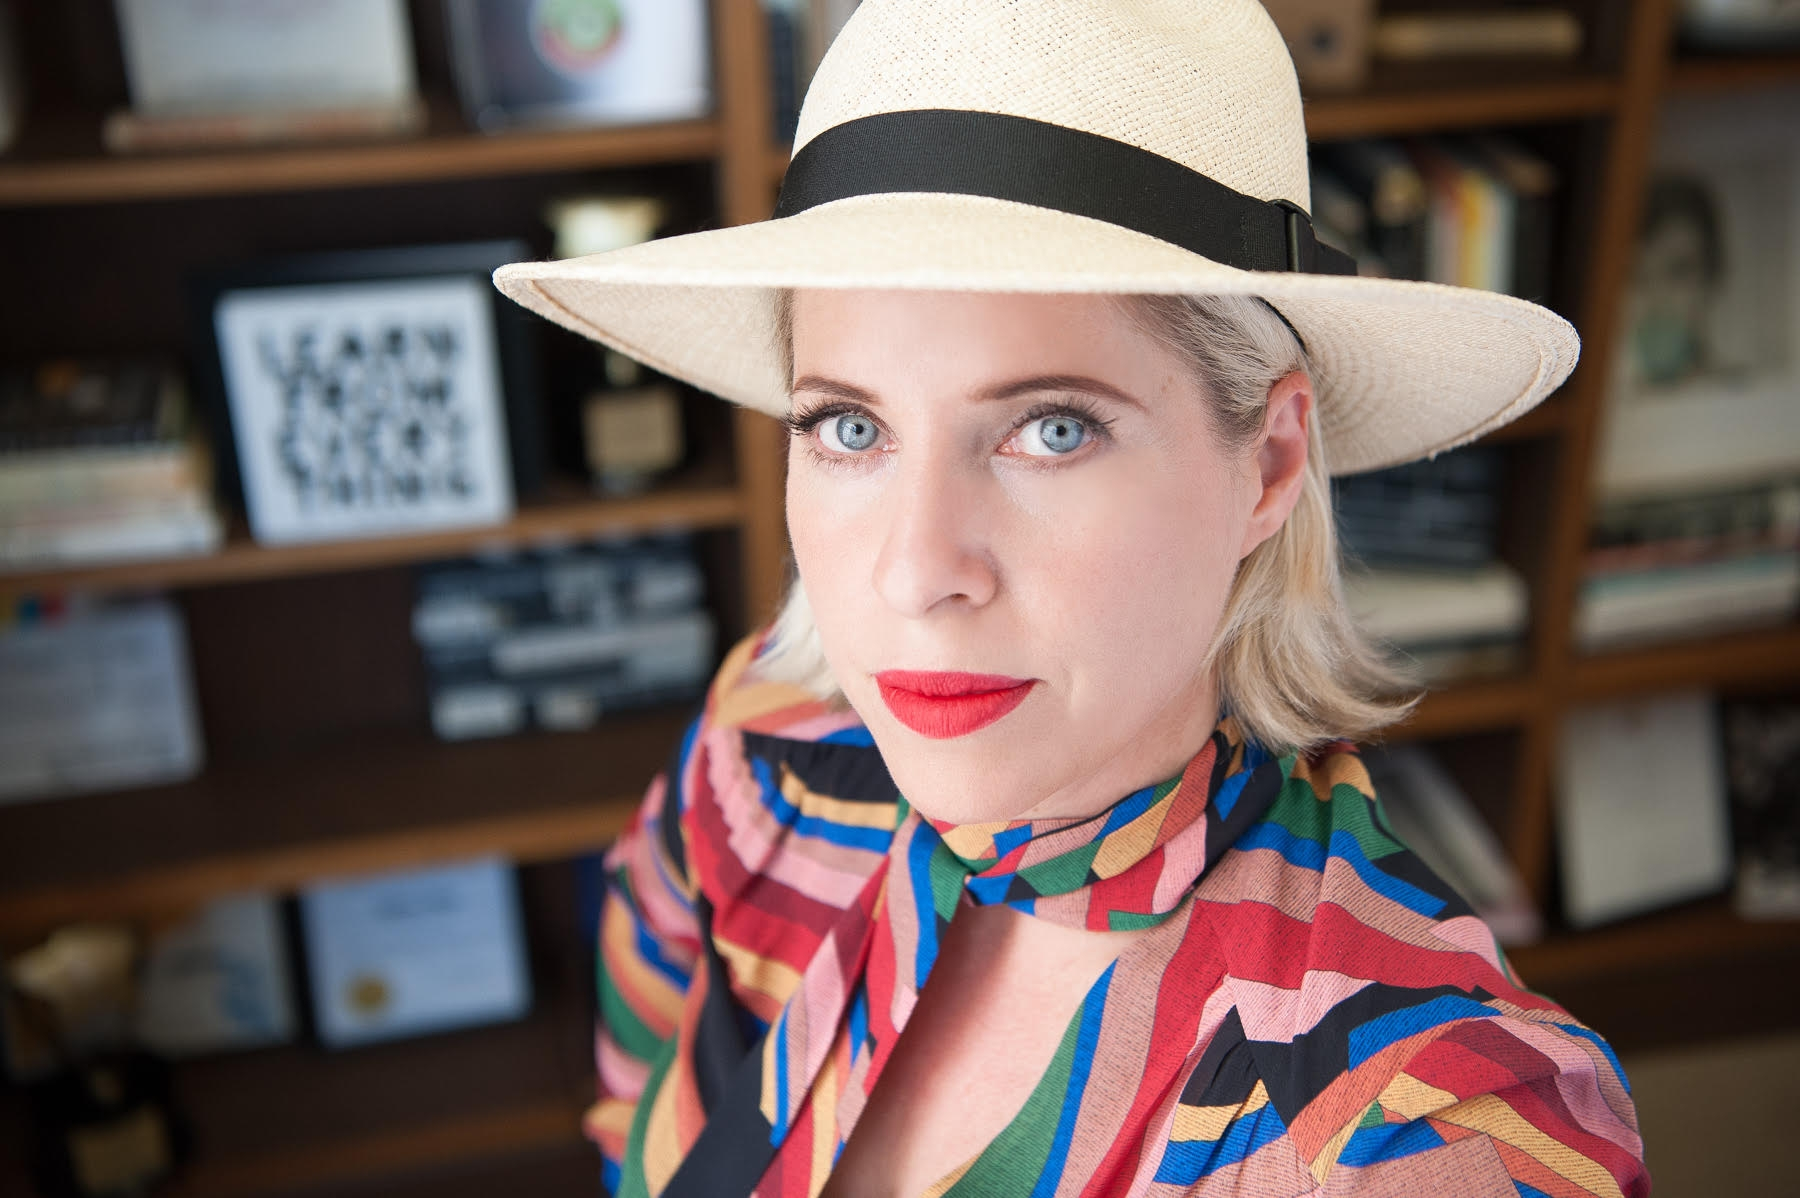 """TIFFANY SHLAIN,  FILMMAKER    @TIFFANYSHLA  IN    Tiffany Shlain is an Emmy-nominated filmmaker, founder of The Webby Awards and co-founder of 50/50 Day. Her new film """"50/50: Rethinking the Past, Present & Future of Women + Power"""" is the launching point for a 50/50 Day, global day of screenings and discussions on the importance of a more gender balanced world. Tiffany's films and work have received over 80 awards and distinctions including a Disruptive Innovation Award from Tribeca Film Festival and NPR's list of best commencement speeches. Four of her films have premiered at Sundance, The US State Department selected her films for the The American Film Showcase to represent America at embassies around the world. As a speaker, Tiffany has presented at Harvard, NASA, and was the closing speaker for both TEDWomen and TEDMED. Her original series """"The Future Starts Here"""" has received over 40 million views. While Tiffany loves technology, for the last 7 years, she turns off all screens with her family for what they call their technology shabbat."""